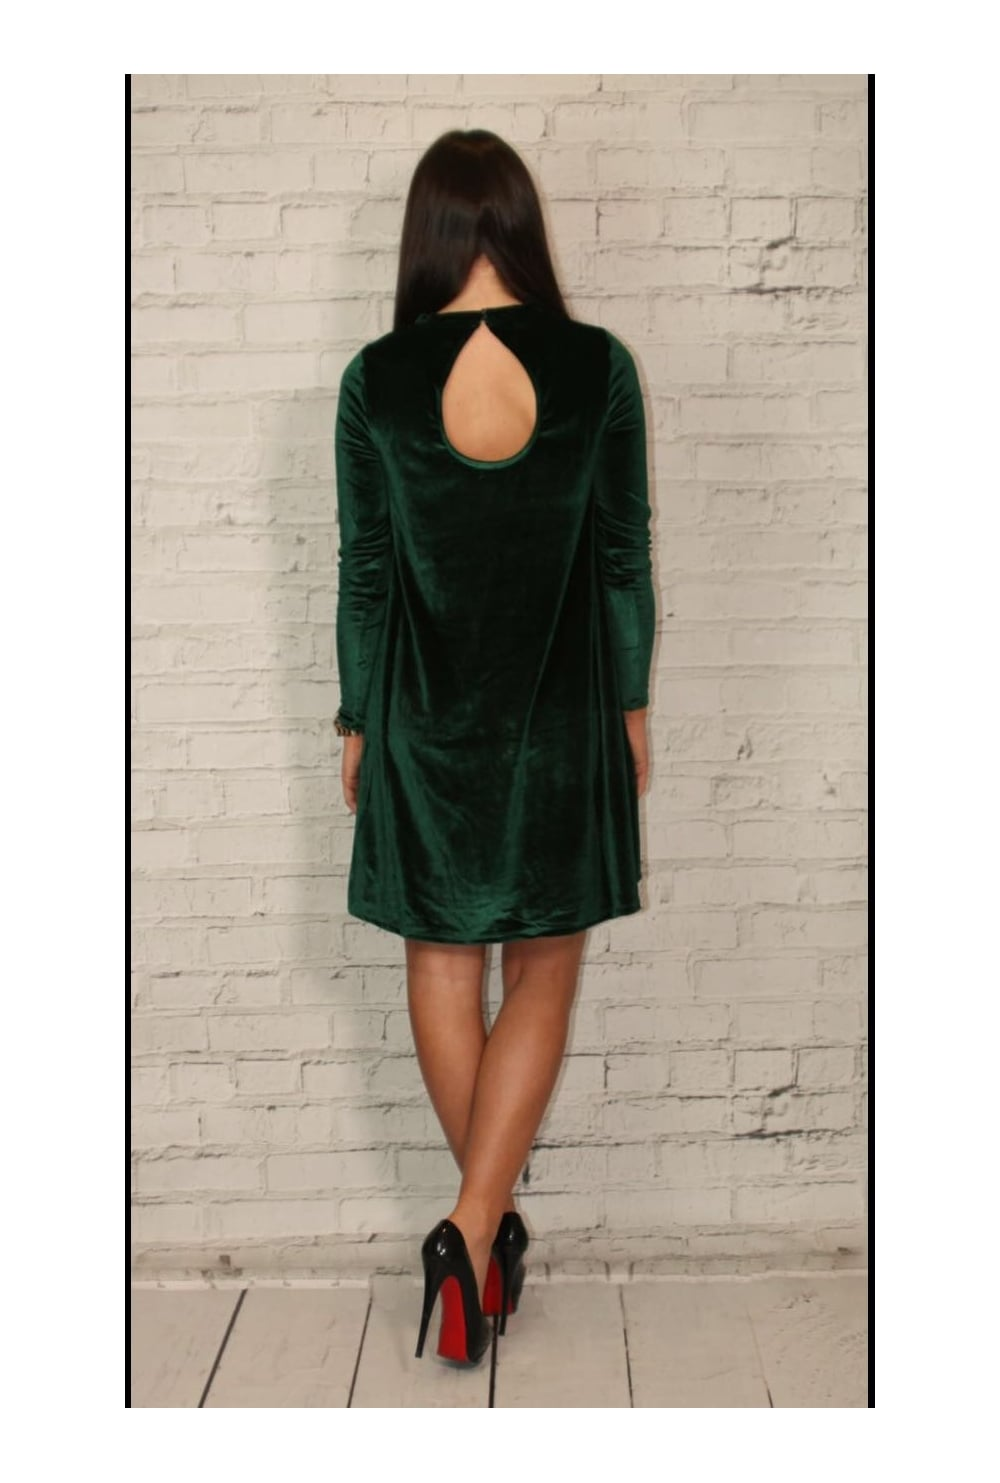 f59017f6fa4e Only Green Velvet swing Dress - Only from Ruby Room UK